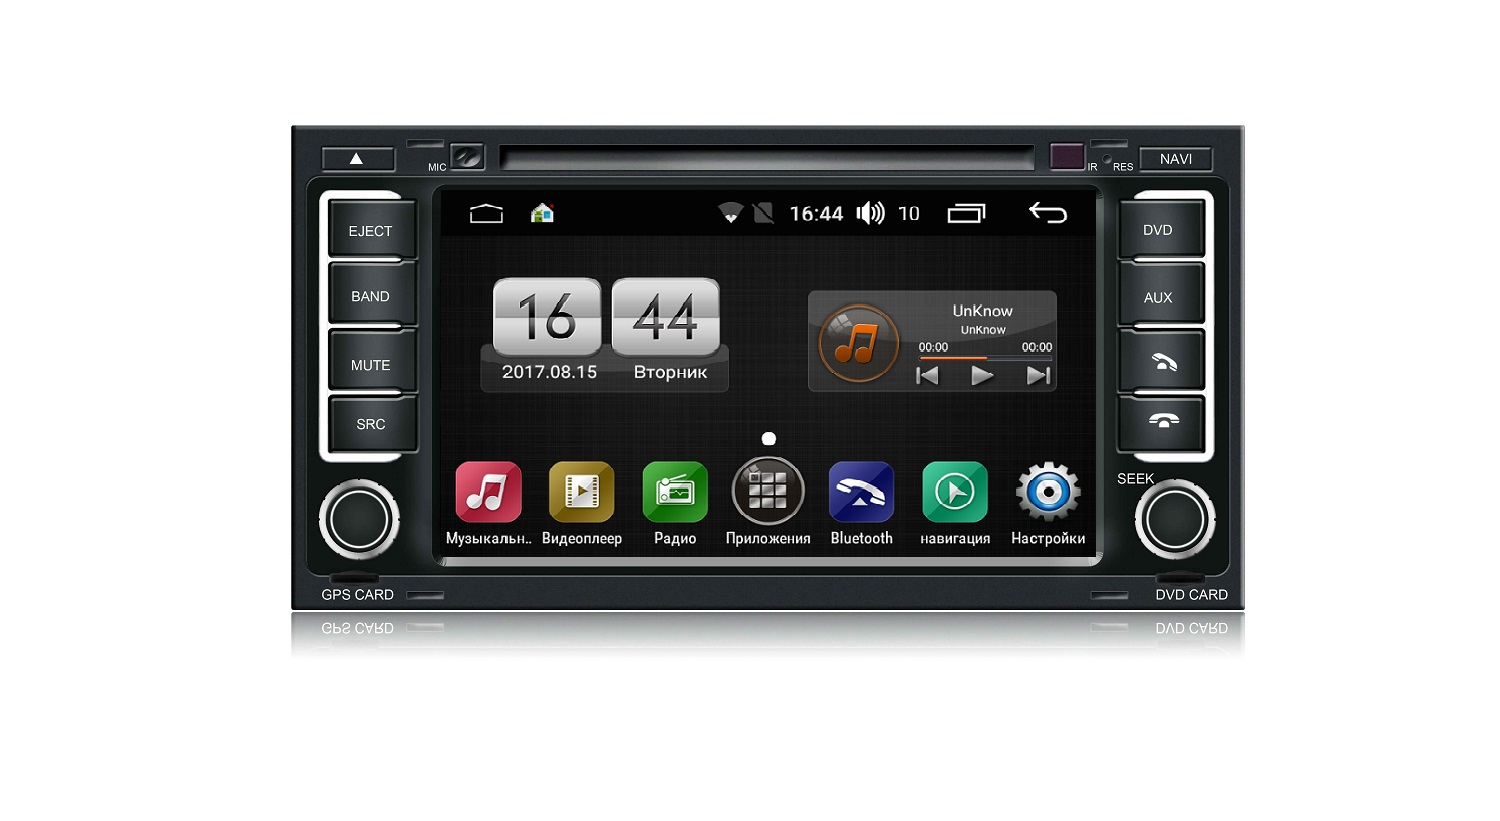 Штатная магнитола FarCar s170 для VW Touareg на Android (L042) lsqstar 7 android car dvd player w gps radio wifi canbus pip swc rds for vw sharan golf t5 polo b5